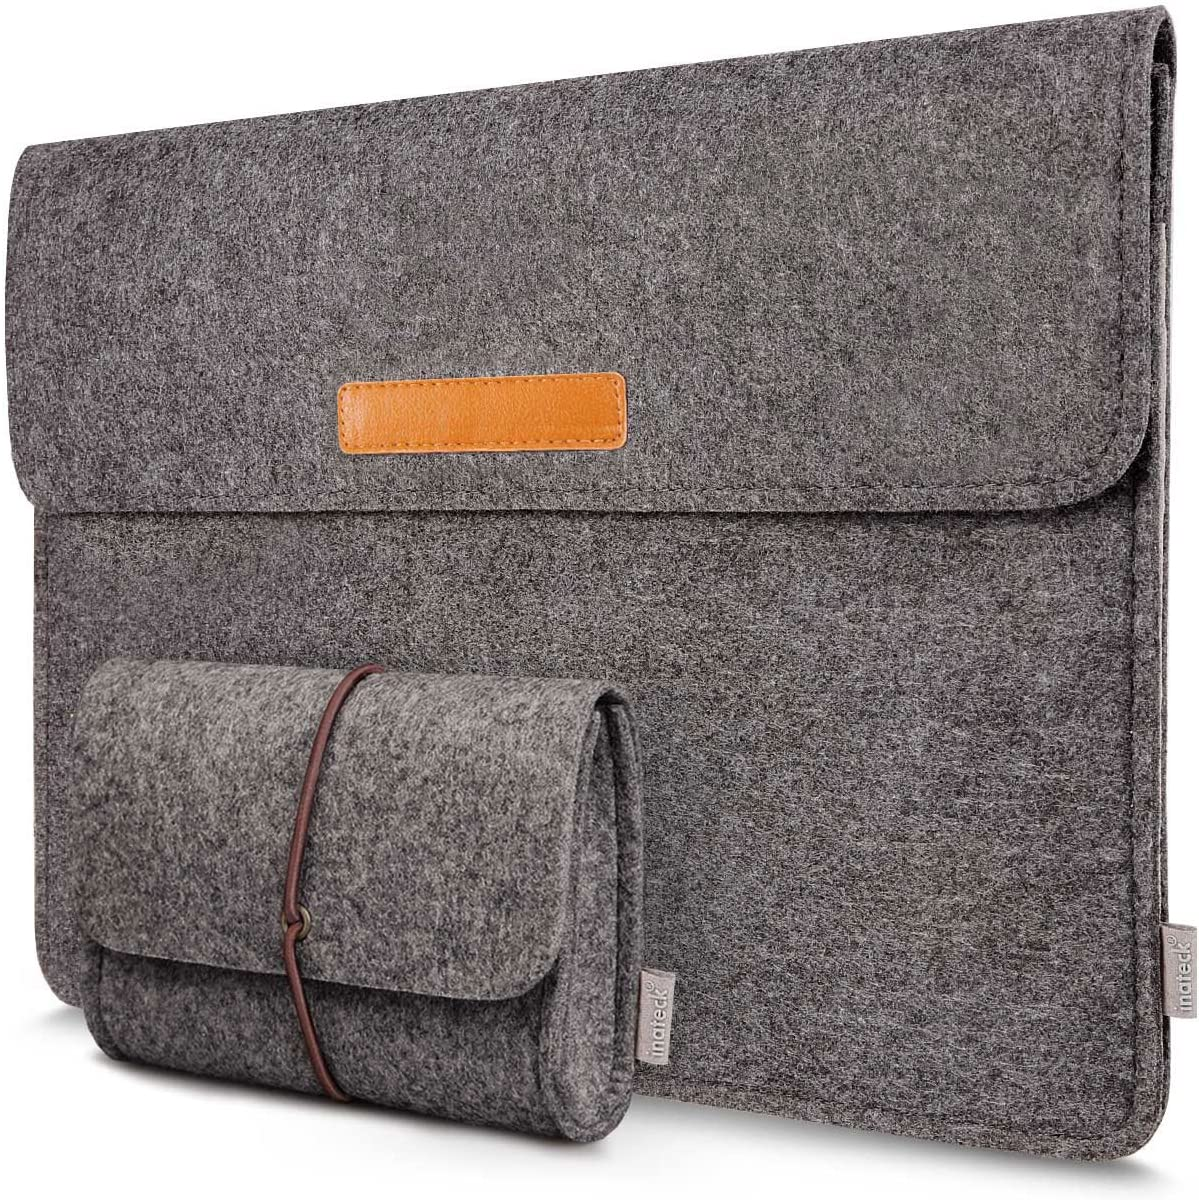 Inateck Laptop Sleeve Case Compatible with New 16 Inch MacBook Pro 2019/15 Inch Old MacBook Pro Retina 2012-2015/Dell XPS 15 Felt Sleeve, with Small Accessory Bag Pocket, Dark Gray